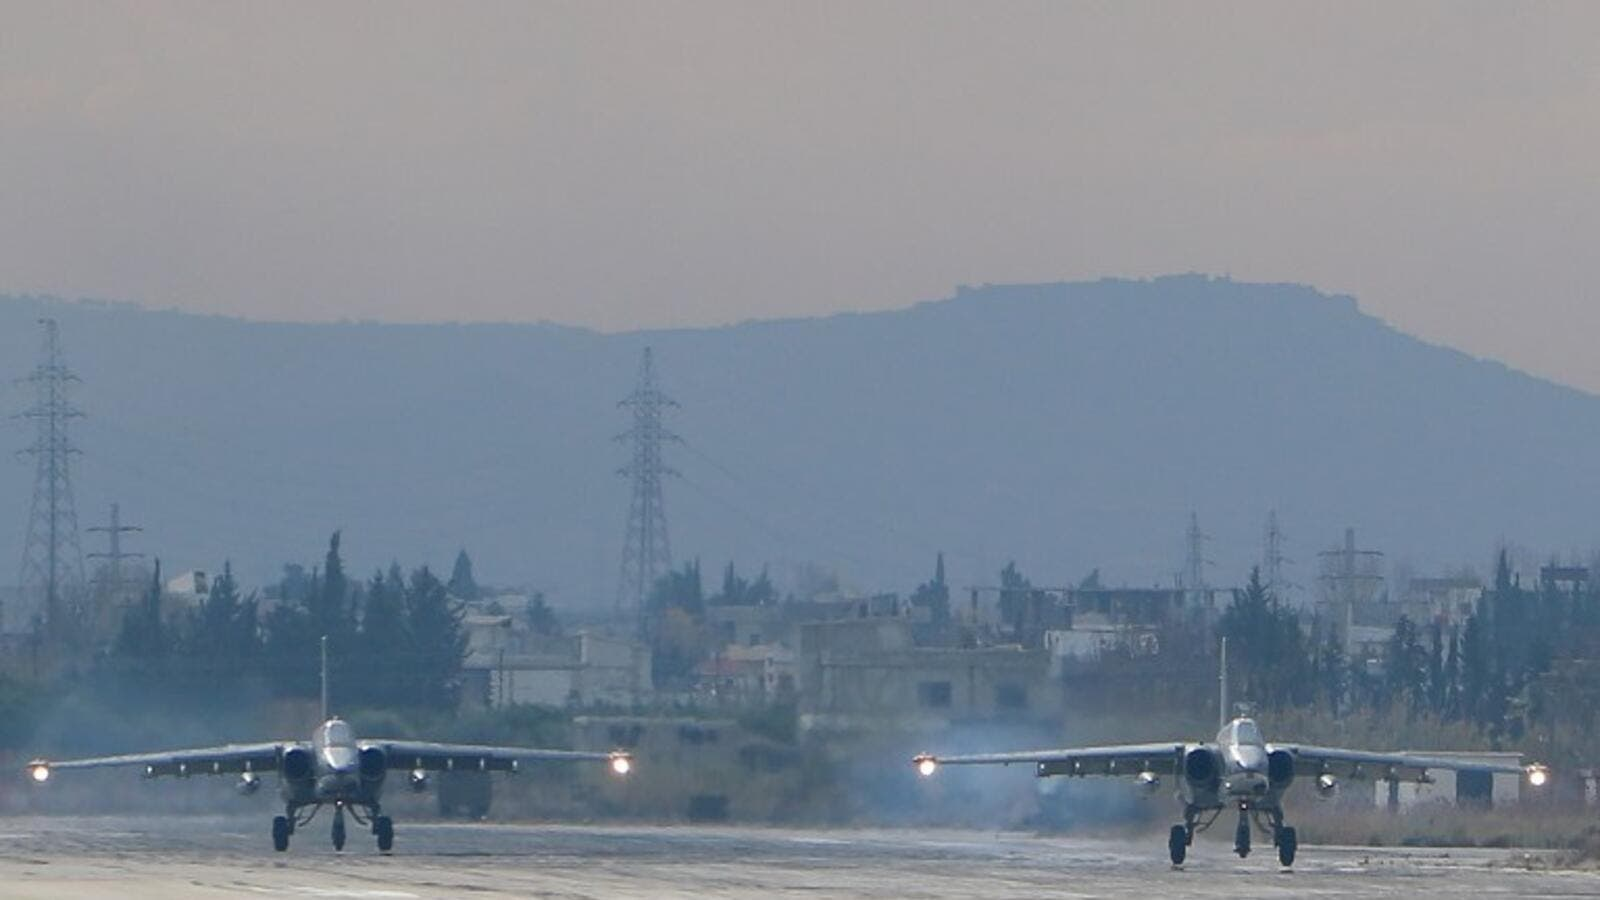 Two Russian Sukhoi Su-24 bombers at the Russian Hmeimim military base in Latakia province. (AFP/File)